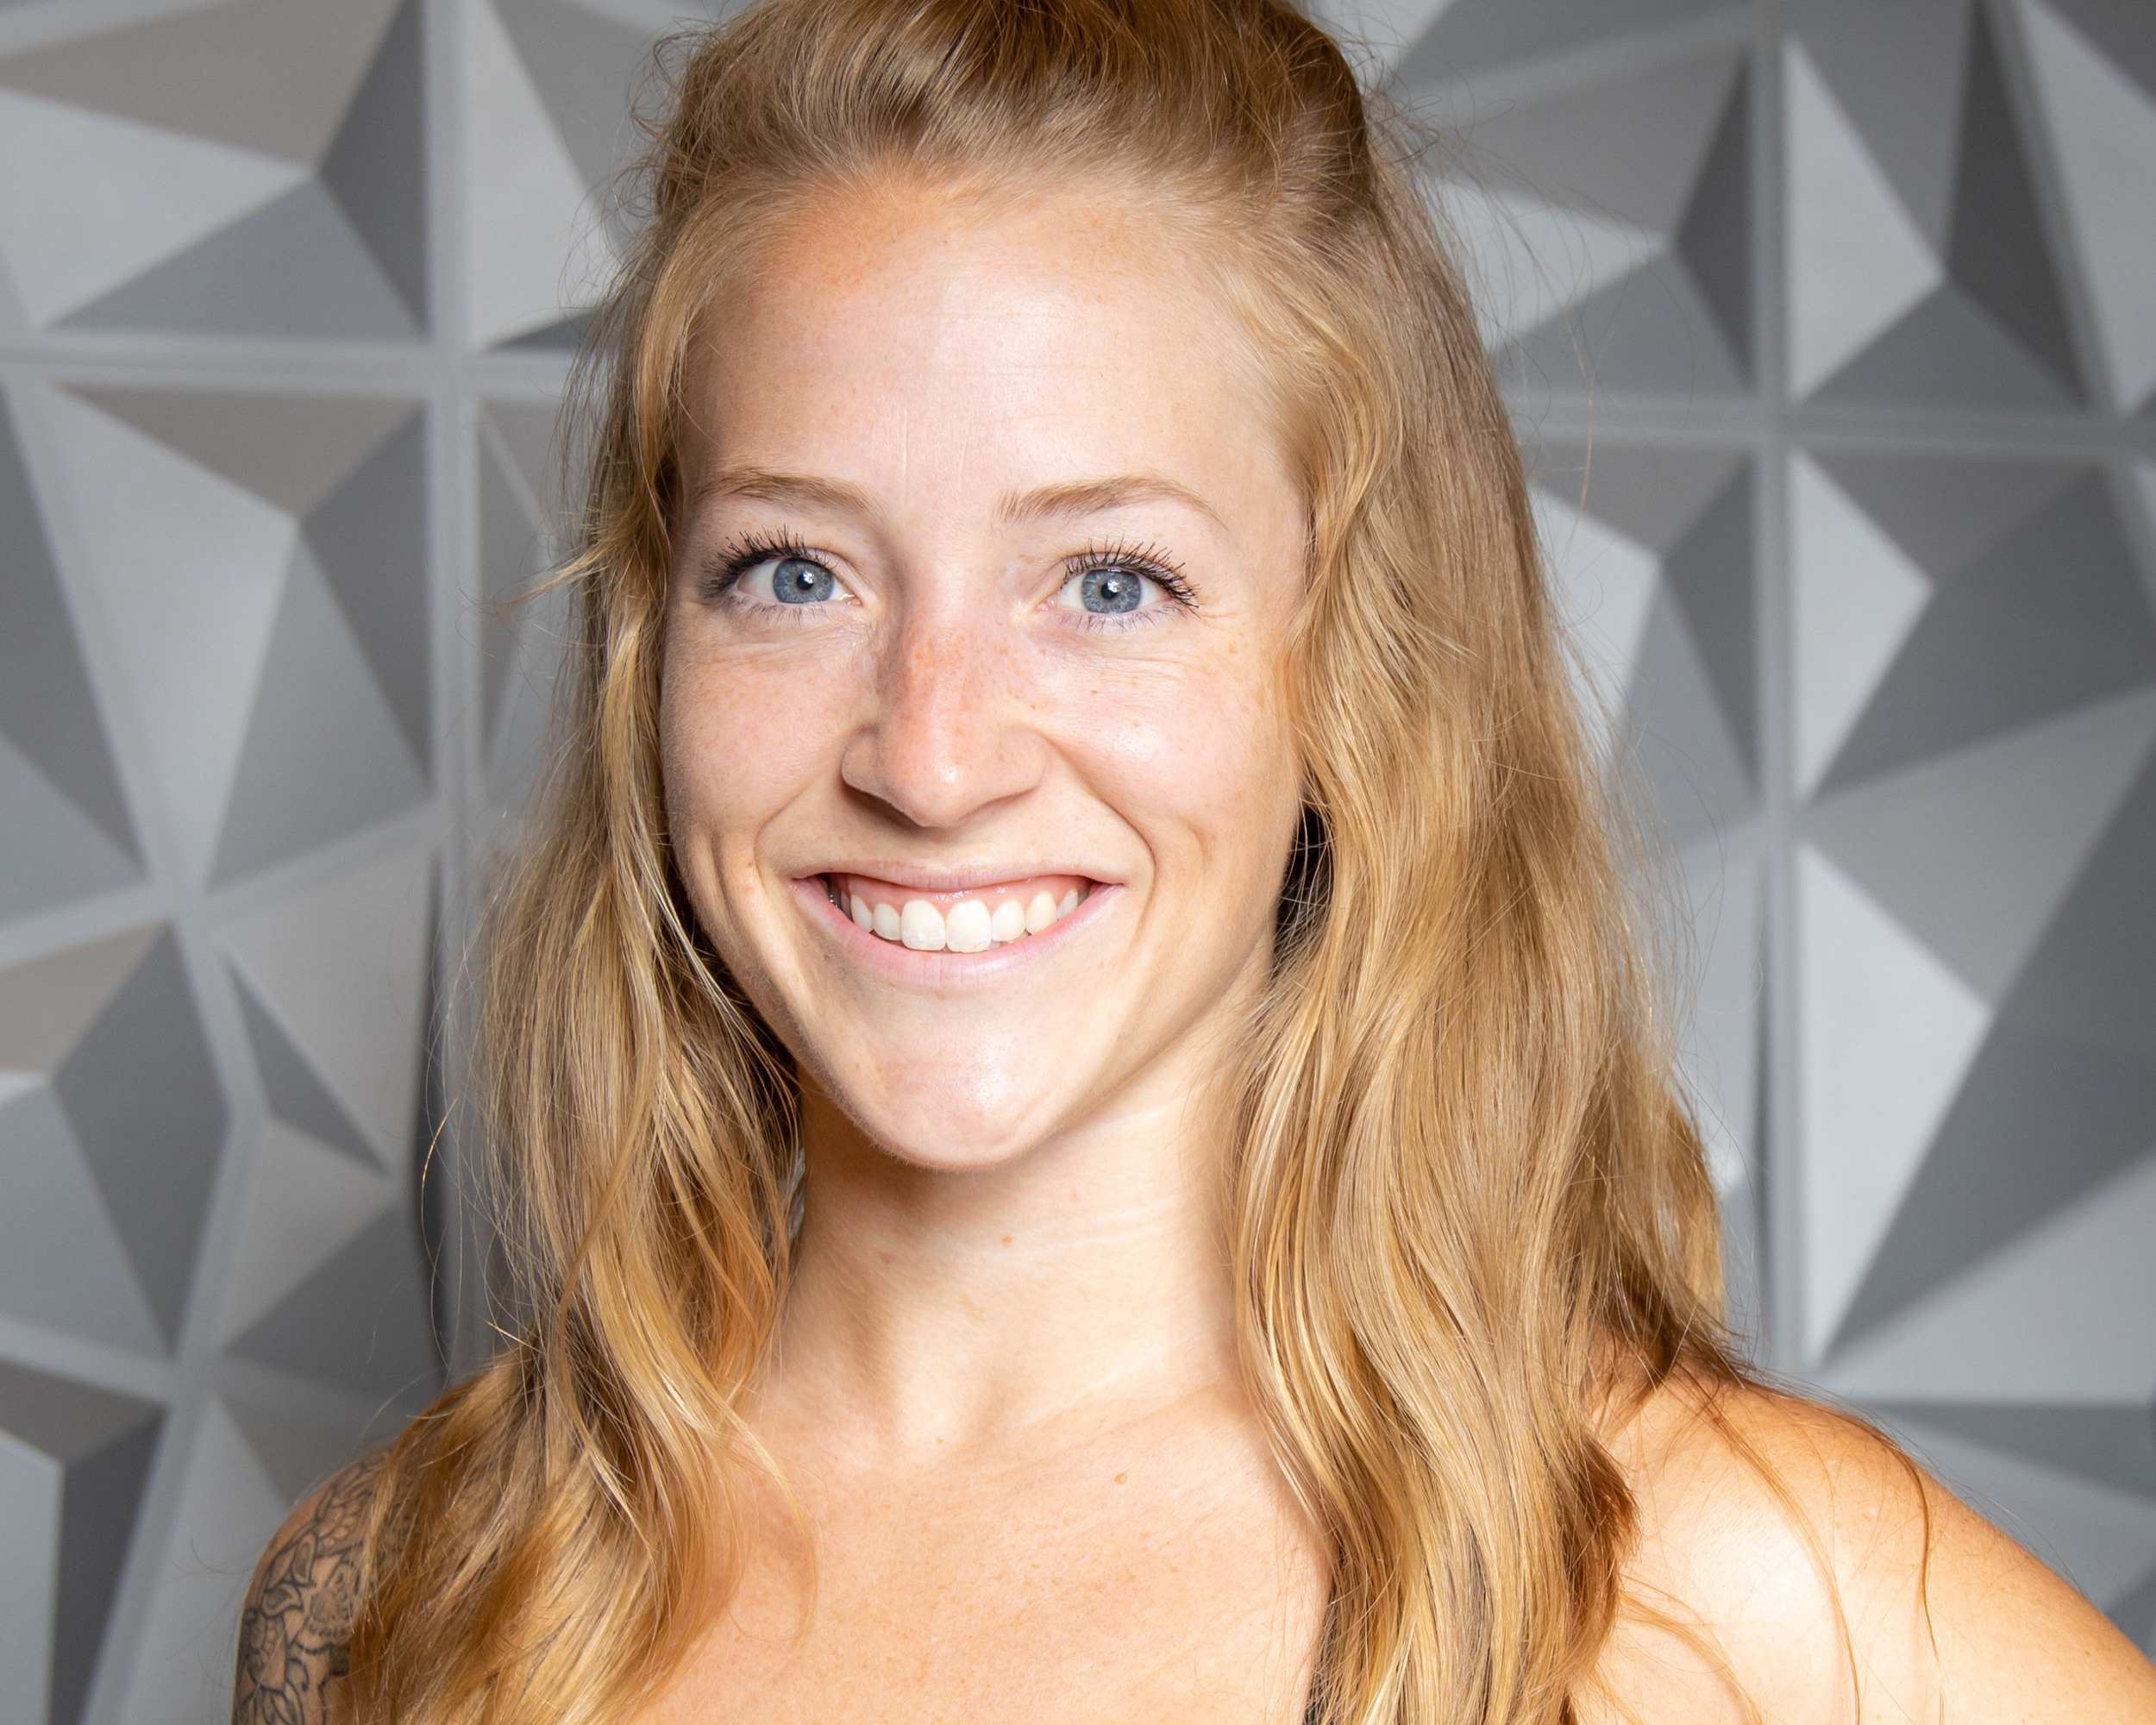 sam palmer - Sam is known as the trainer of trainers and the best barre instructor in Denver, join her for barre or high intensity interval training Wednesday or Friday lunch power hours!